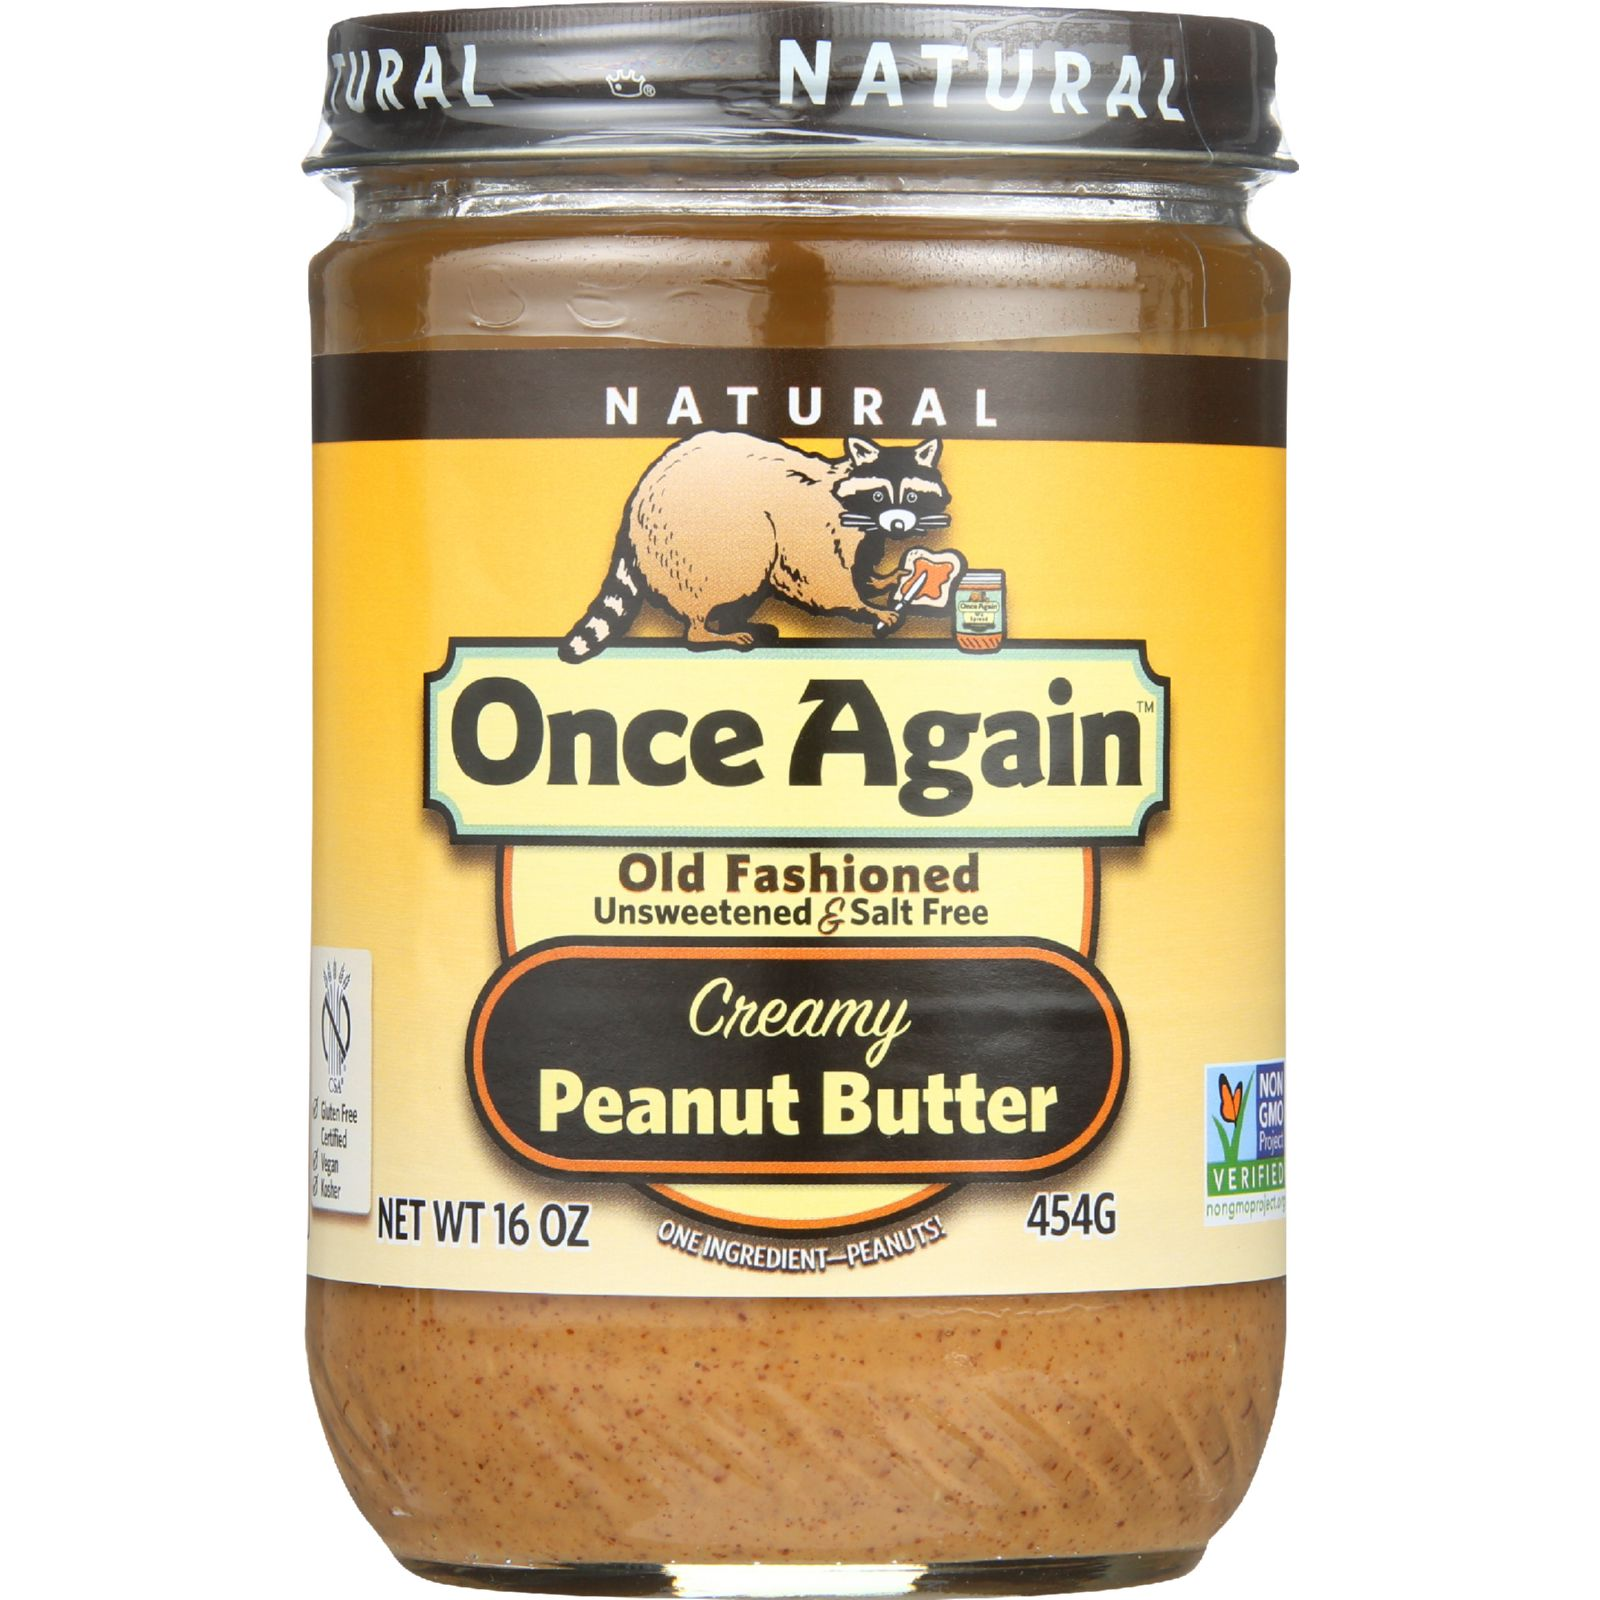 Once Again Peanut Butter - Old Fashioned - Creamy - No Sa...